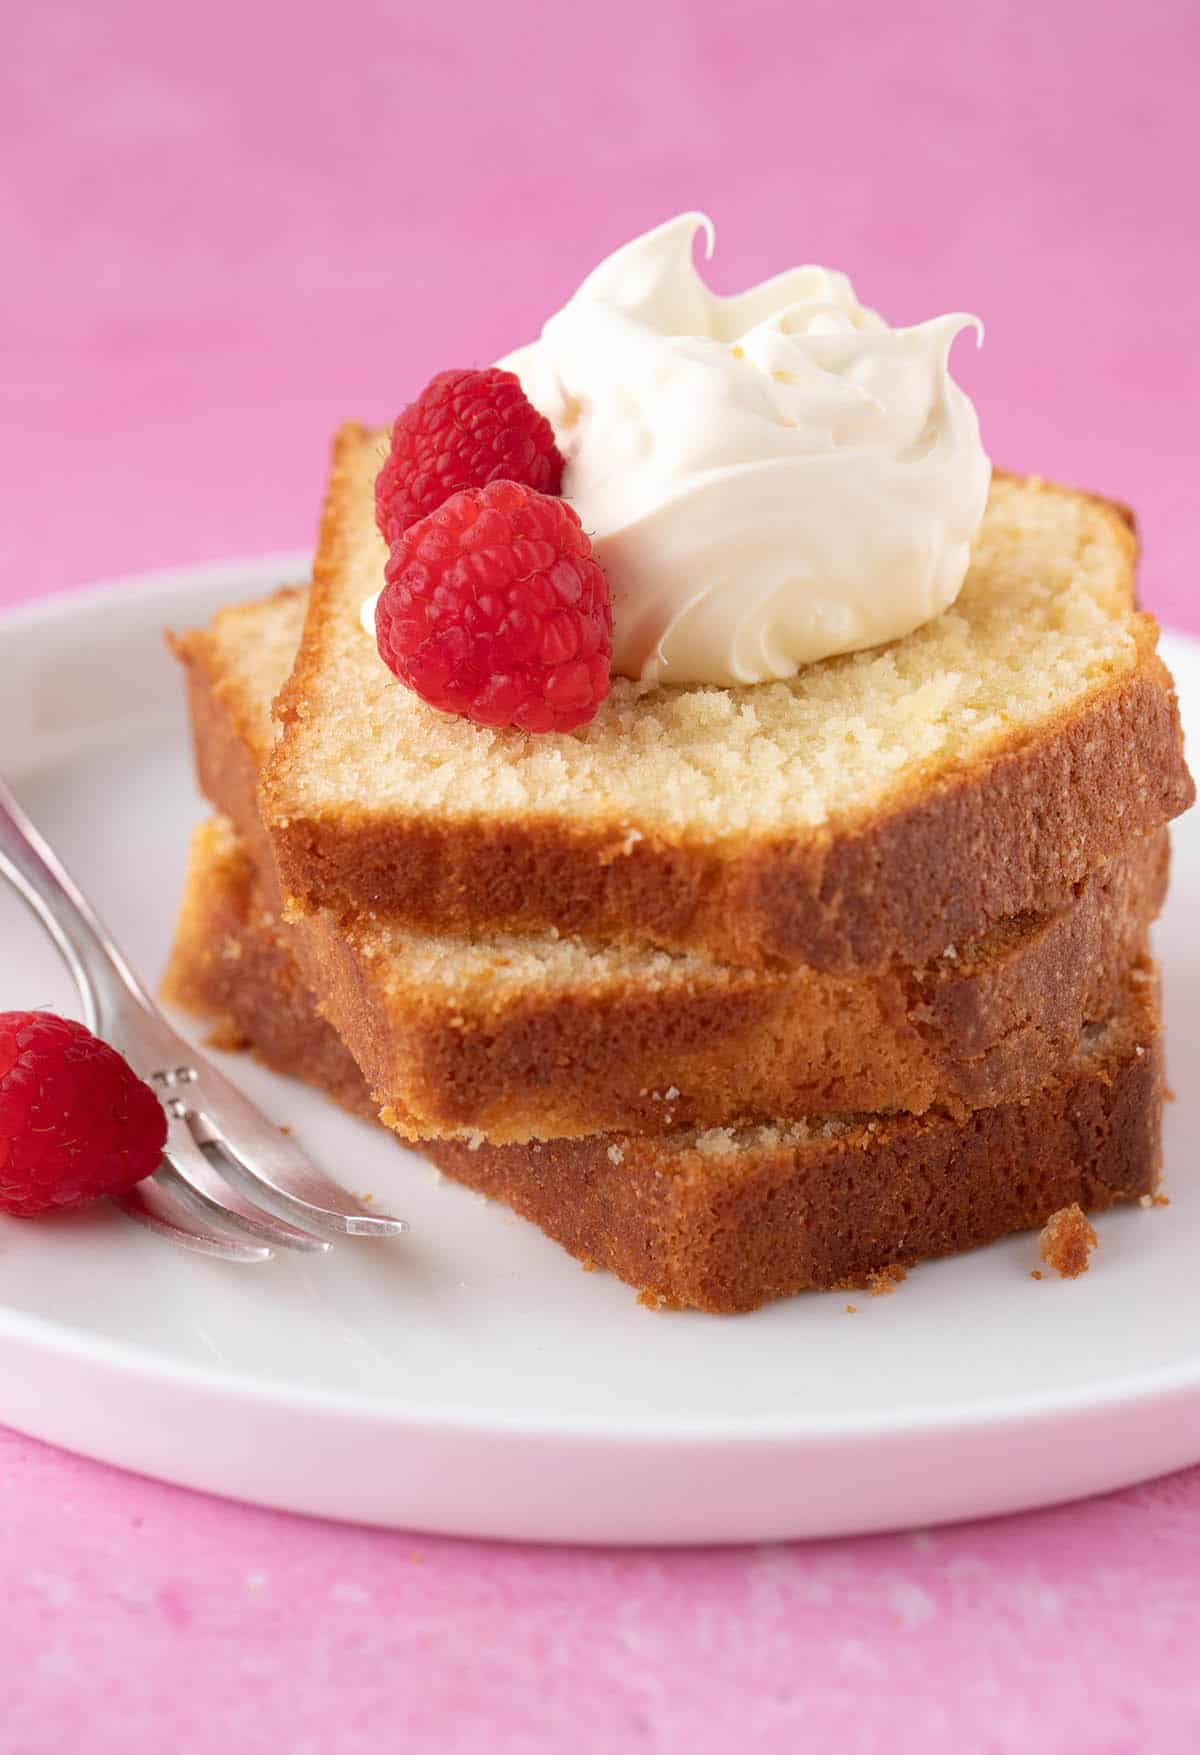 A stack of Pound Cake slices on a white plate, topped with whipped cream and berries